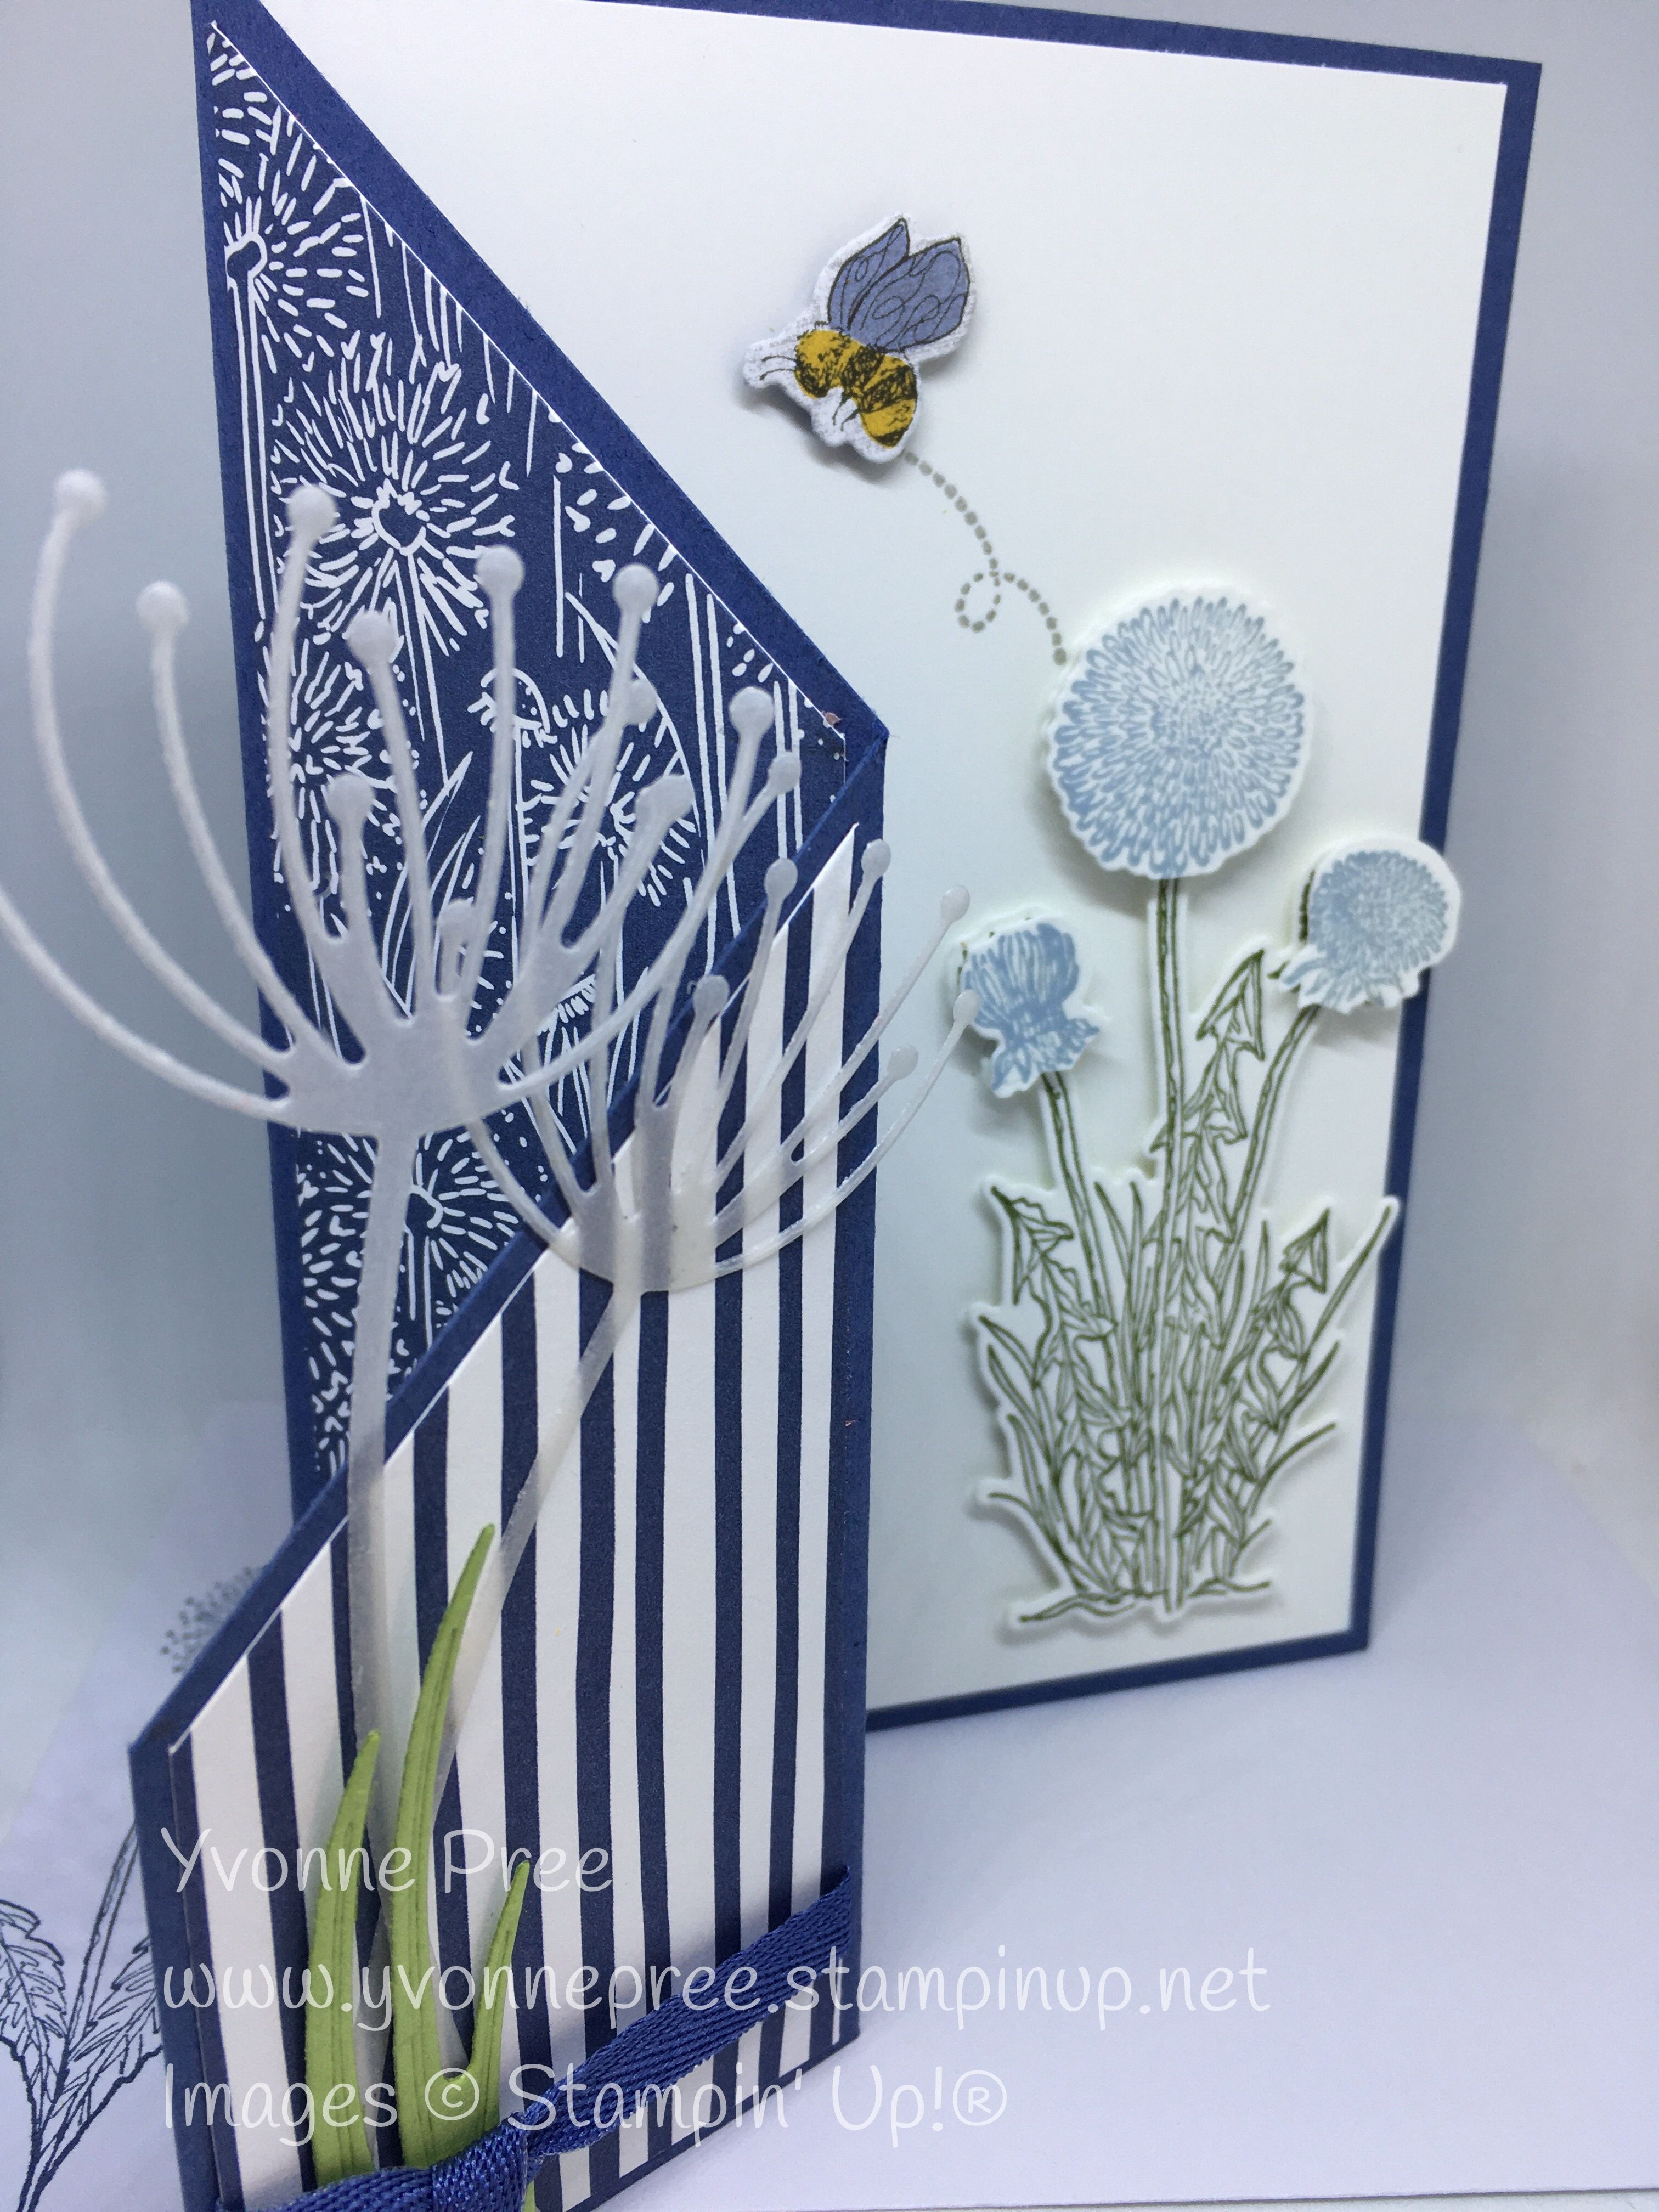 Stampin' Up!'s Garden Wishes bundle is part of the